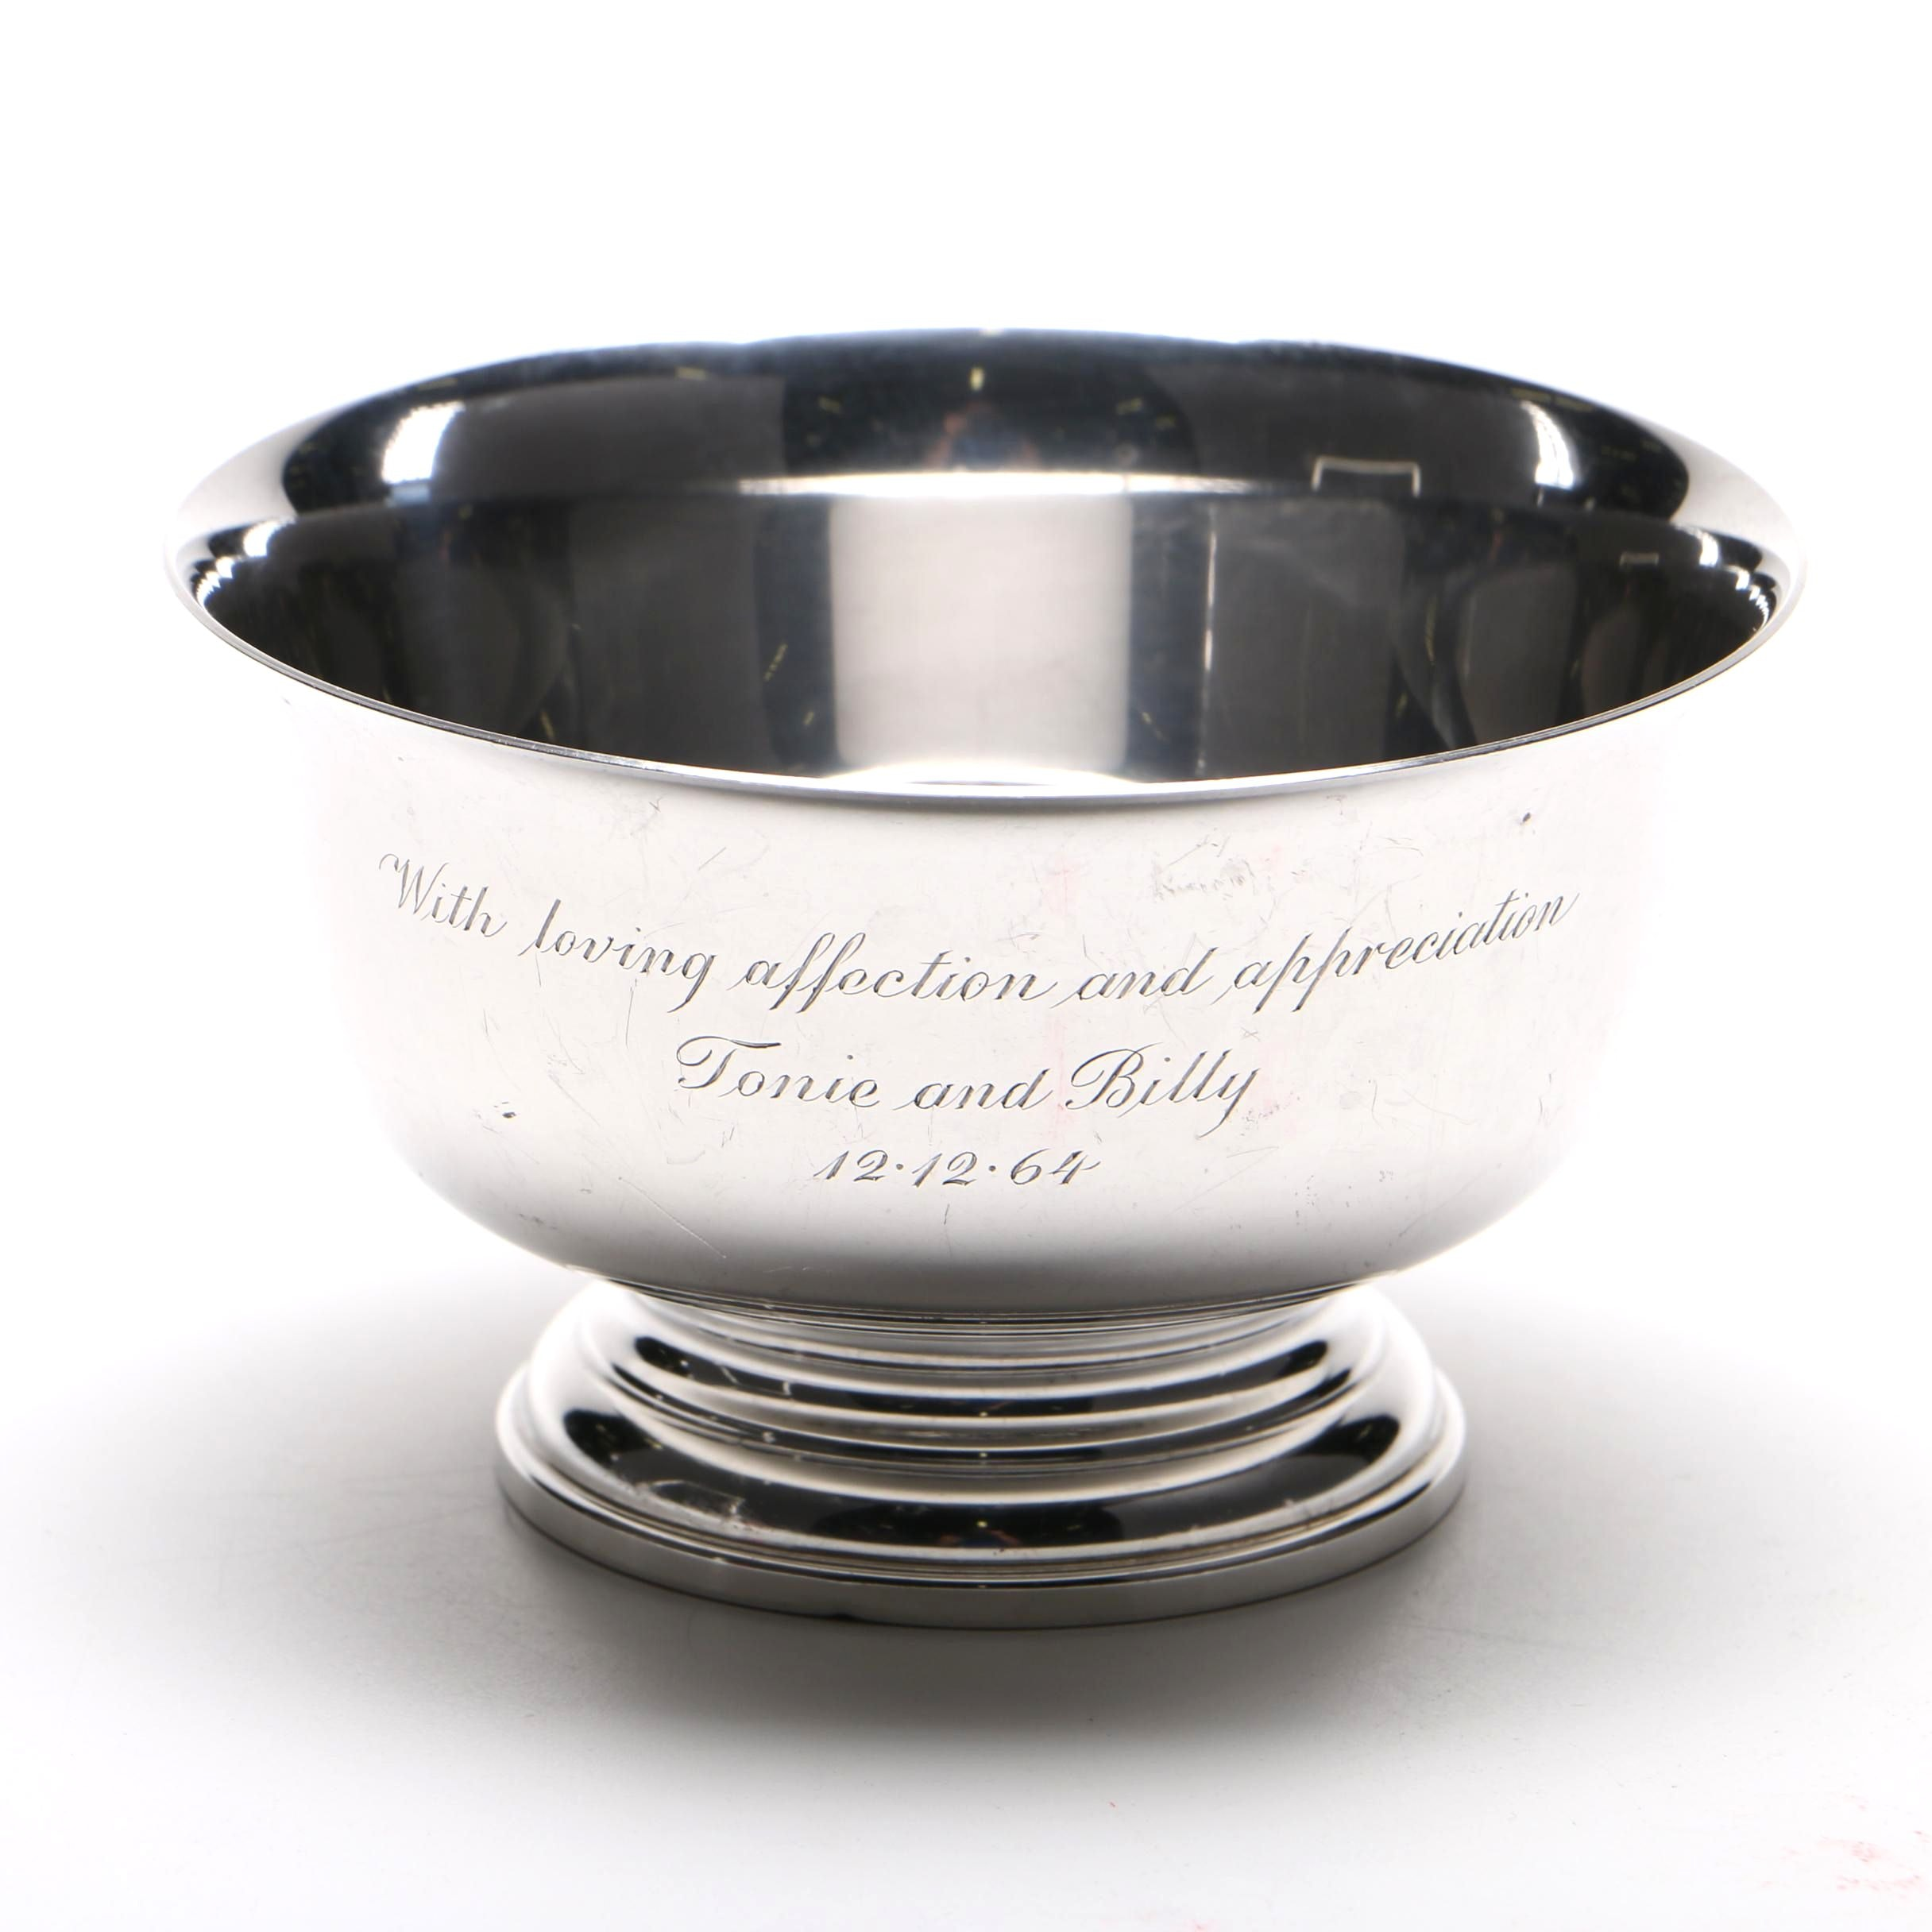 Cartier Sterling Silver Paul Revere Reproduction Bowl